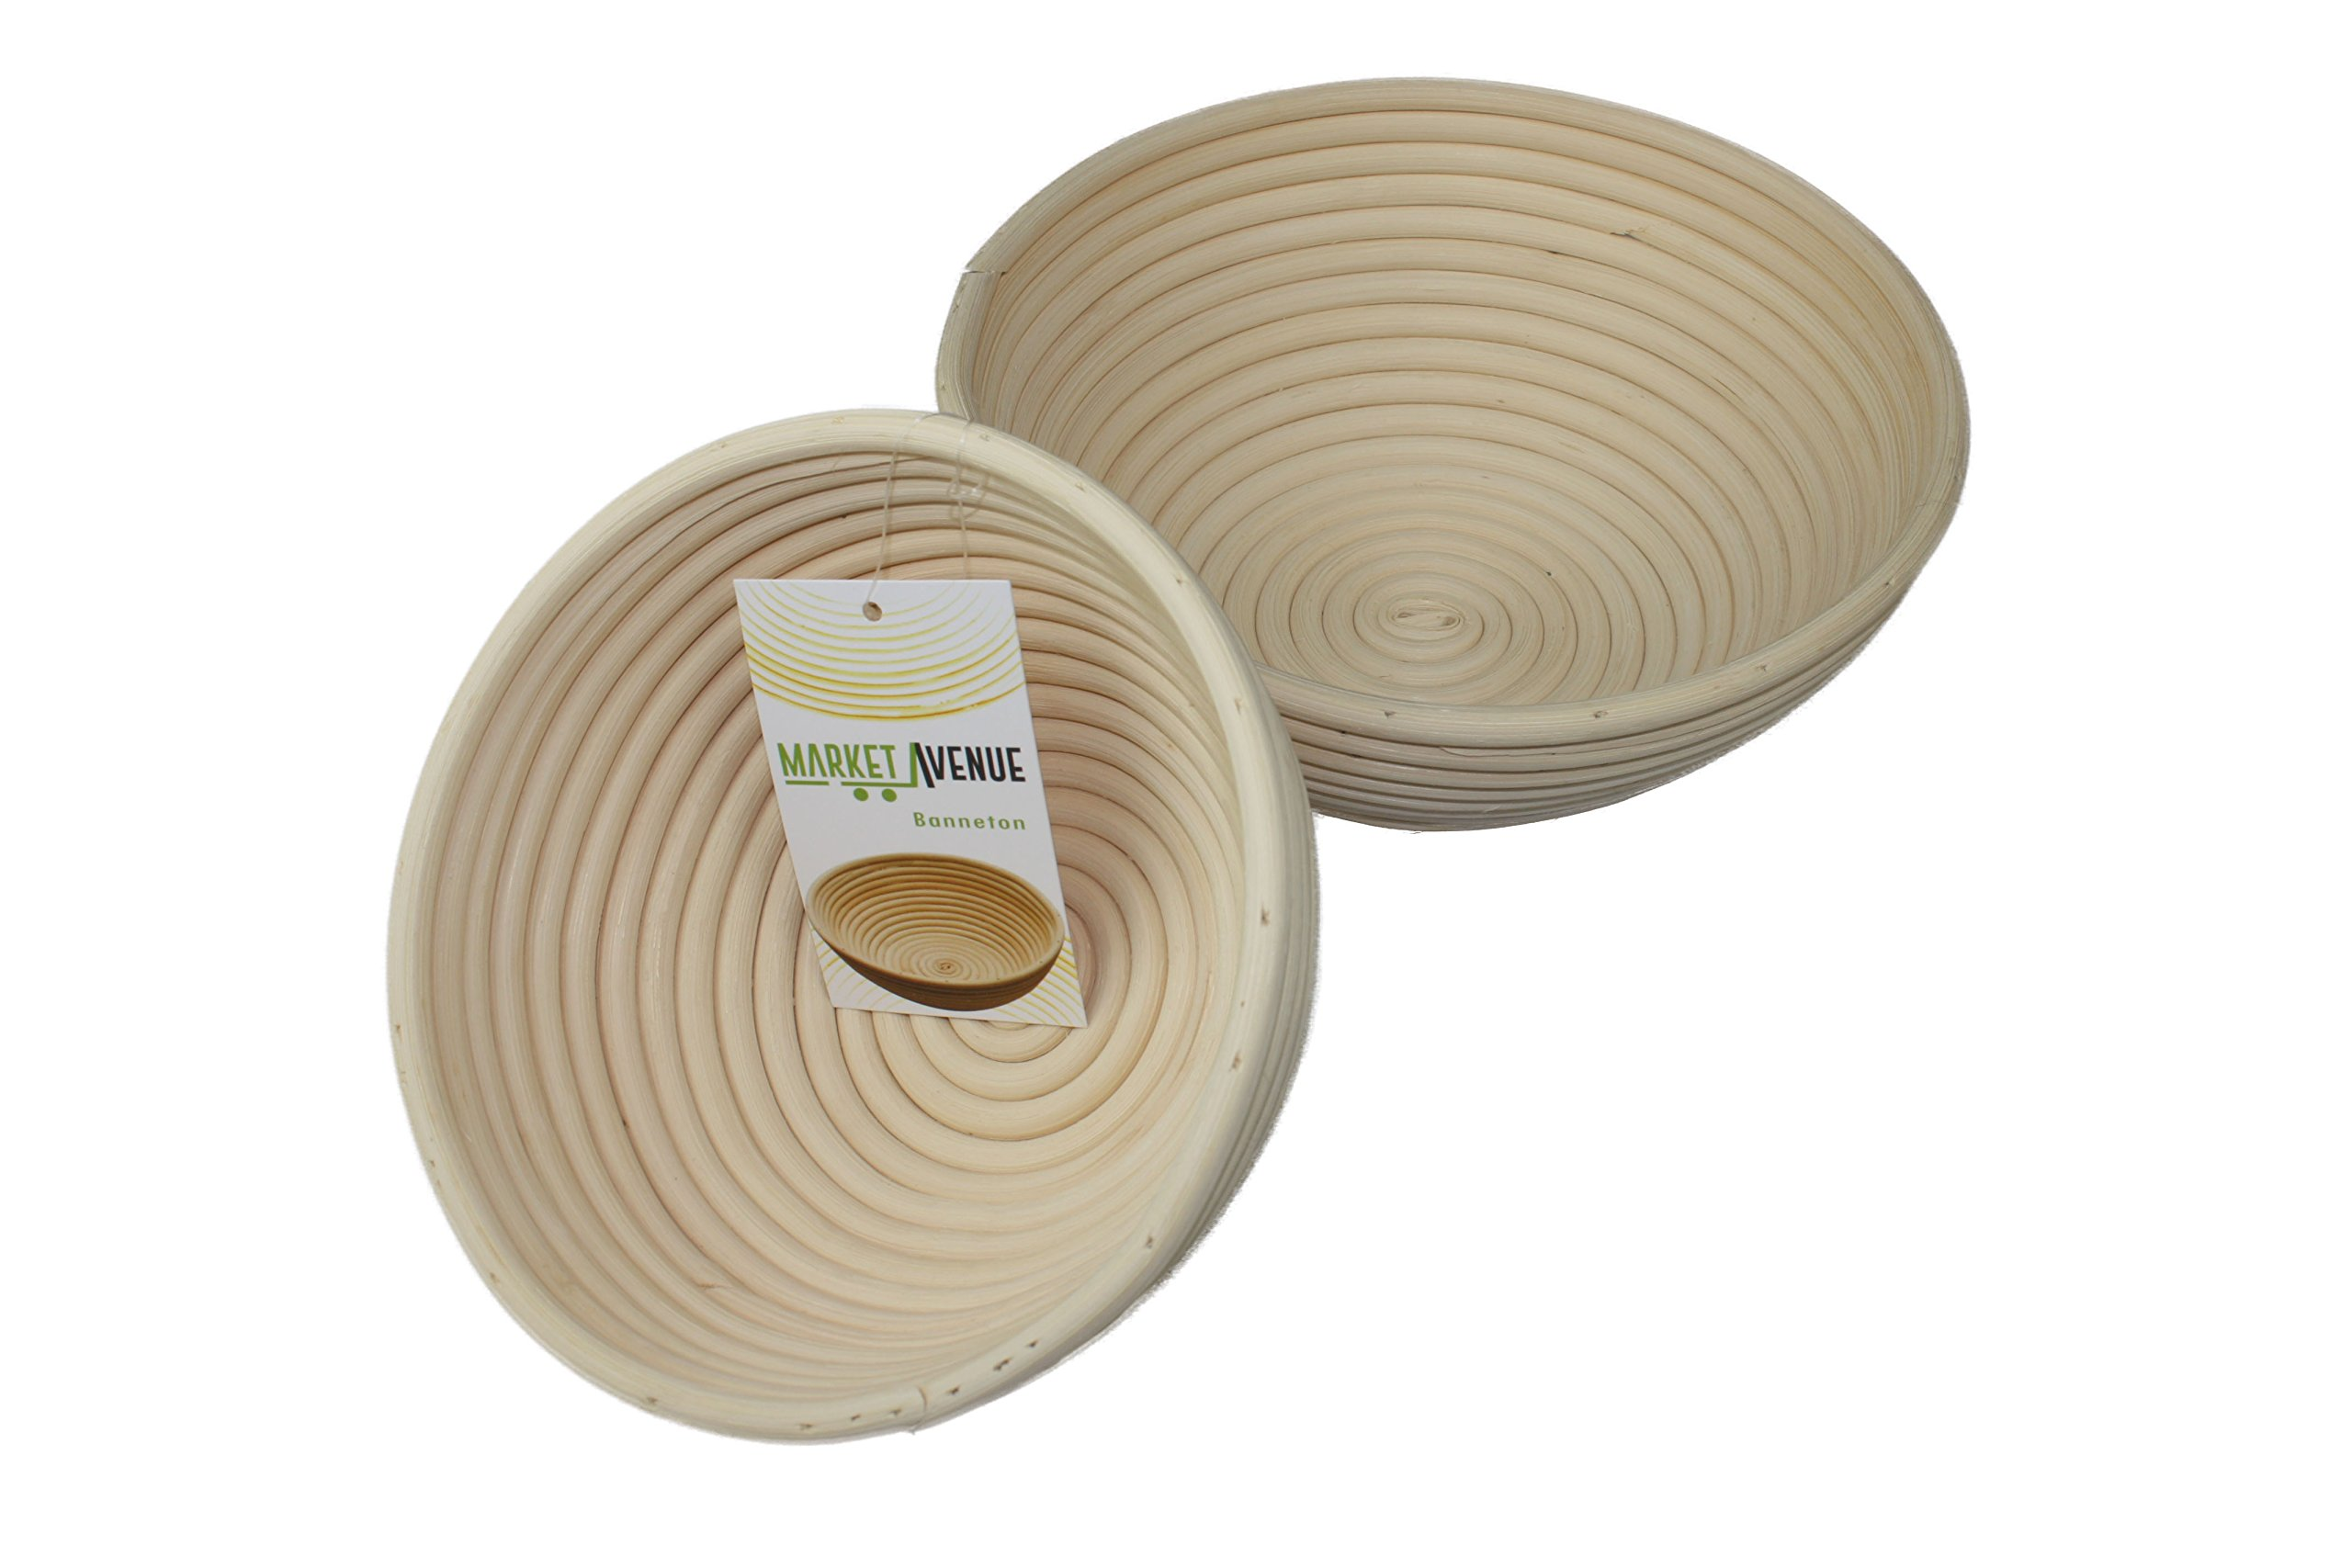 Round Banneton Bread Proofing Basket by Market Avenue | 2pc set: 8.5in and 7in Rattan Bread Baskets | Brotform for baking homemade artisan bread | Handmade Bread Proofing Bowl good for storing bread